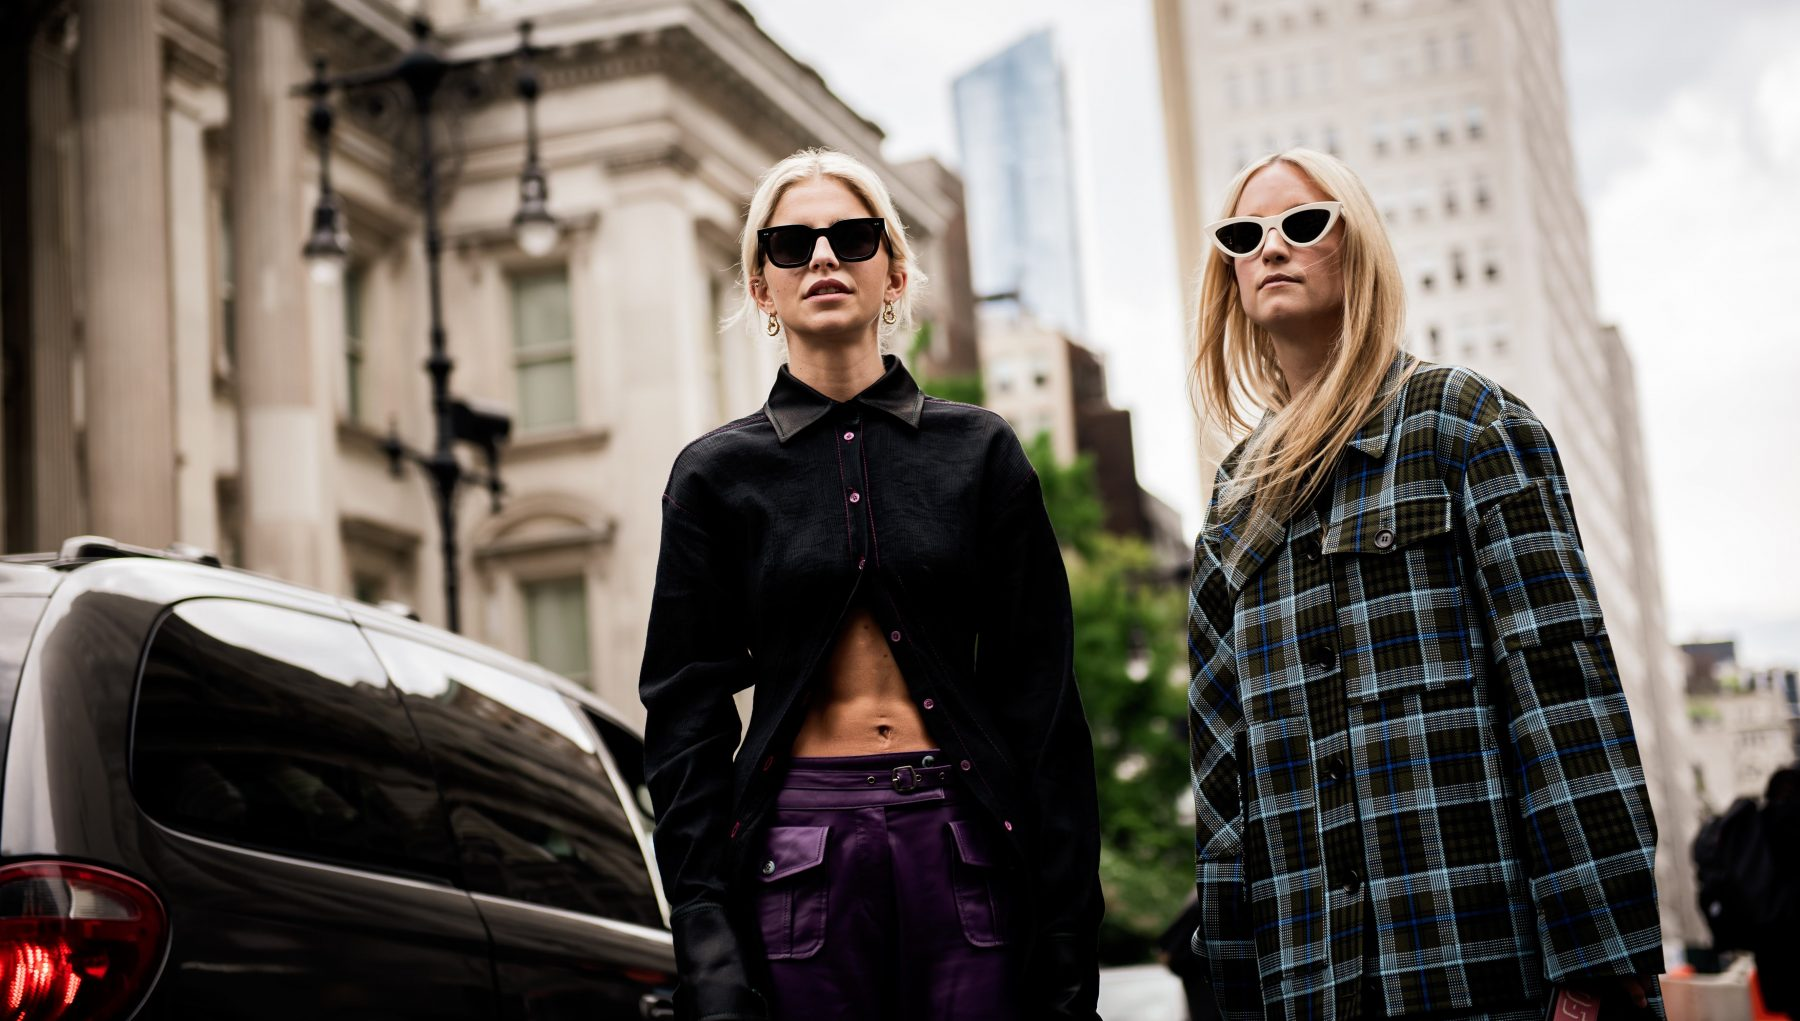 Street Style Fashion NYFW 2019 Spotted By Downtown Part 2